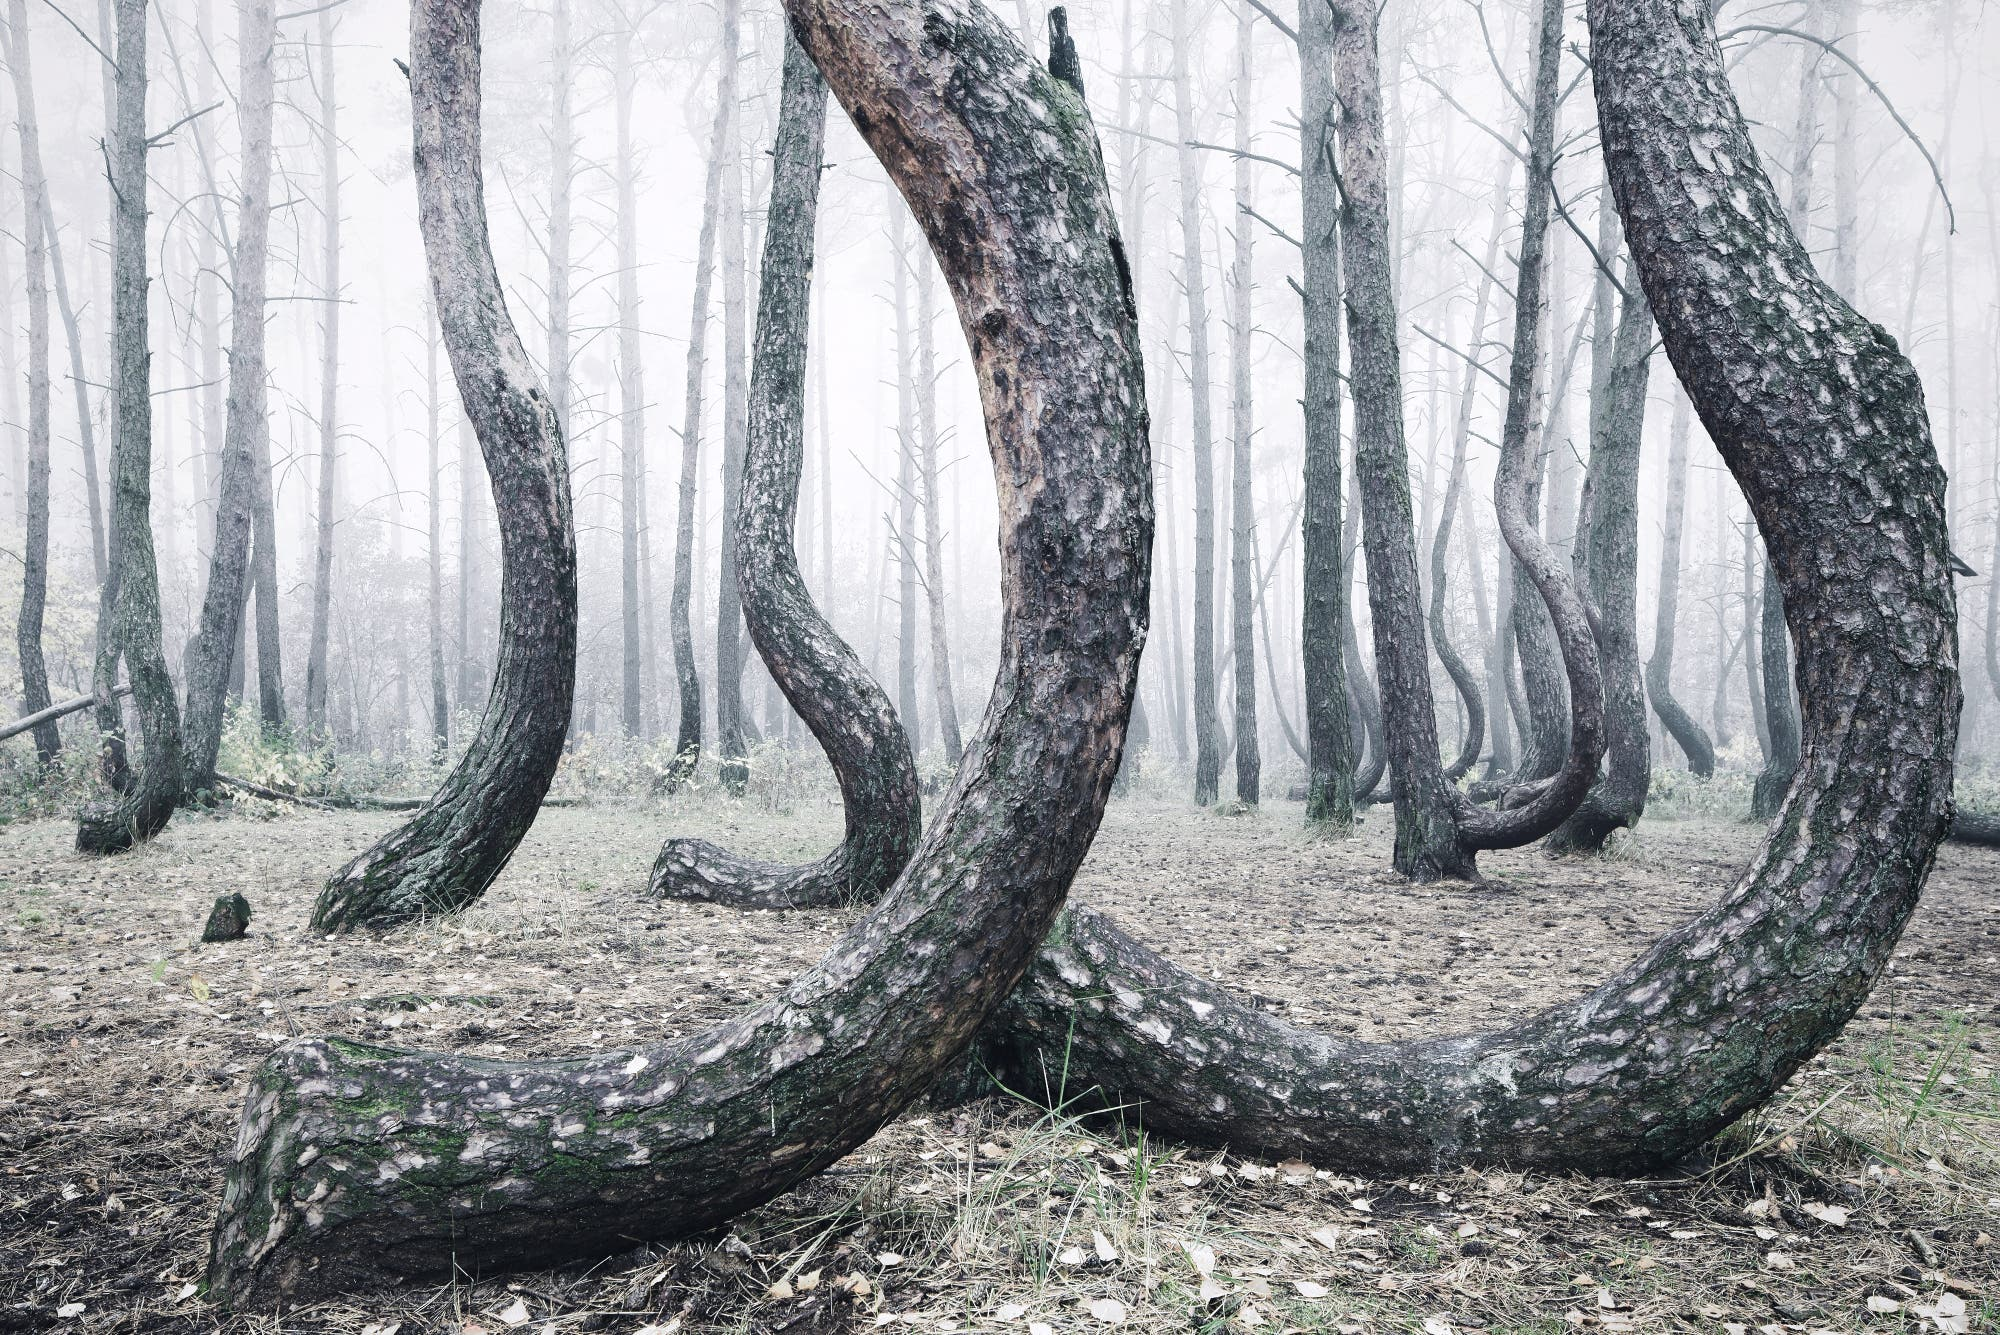 Crooked Forest - Kilian Schînberger (3)